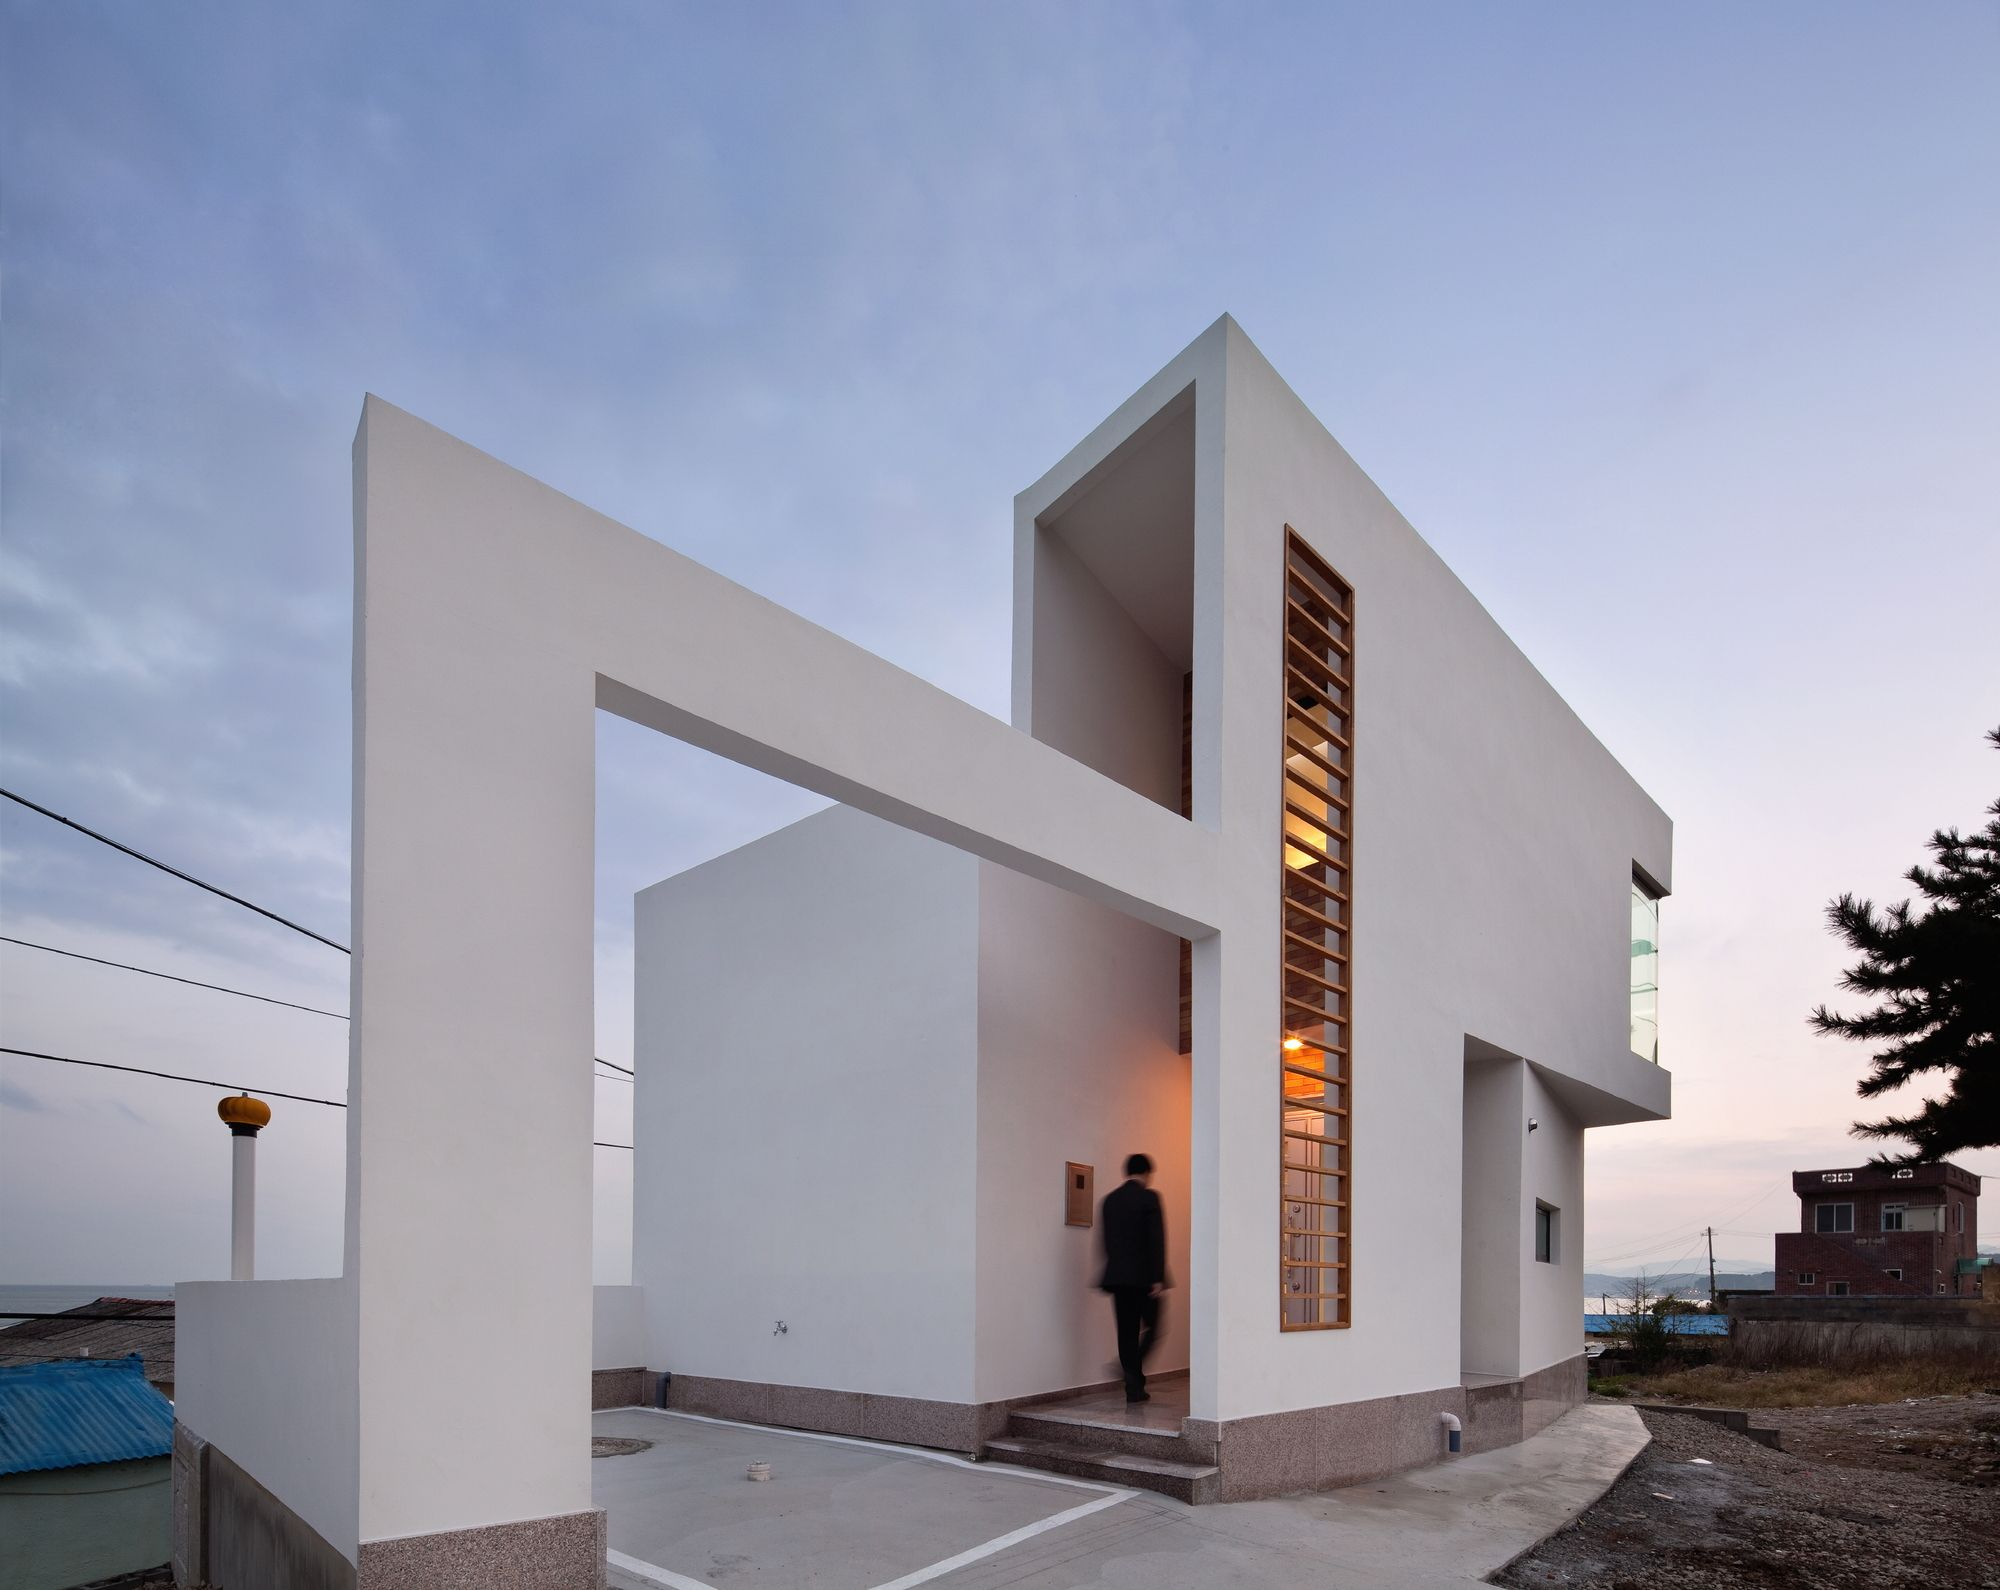 Completed In 2012 In Jangan Eup South Korea Images By Yoon Joon Hwan A Perceptible Frame Kim Taecheol Pr Architecture Minimalist Architecture Artist House